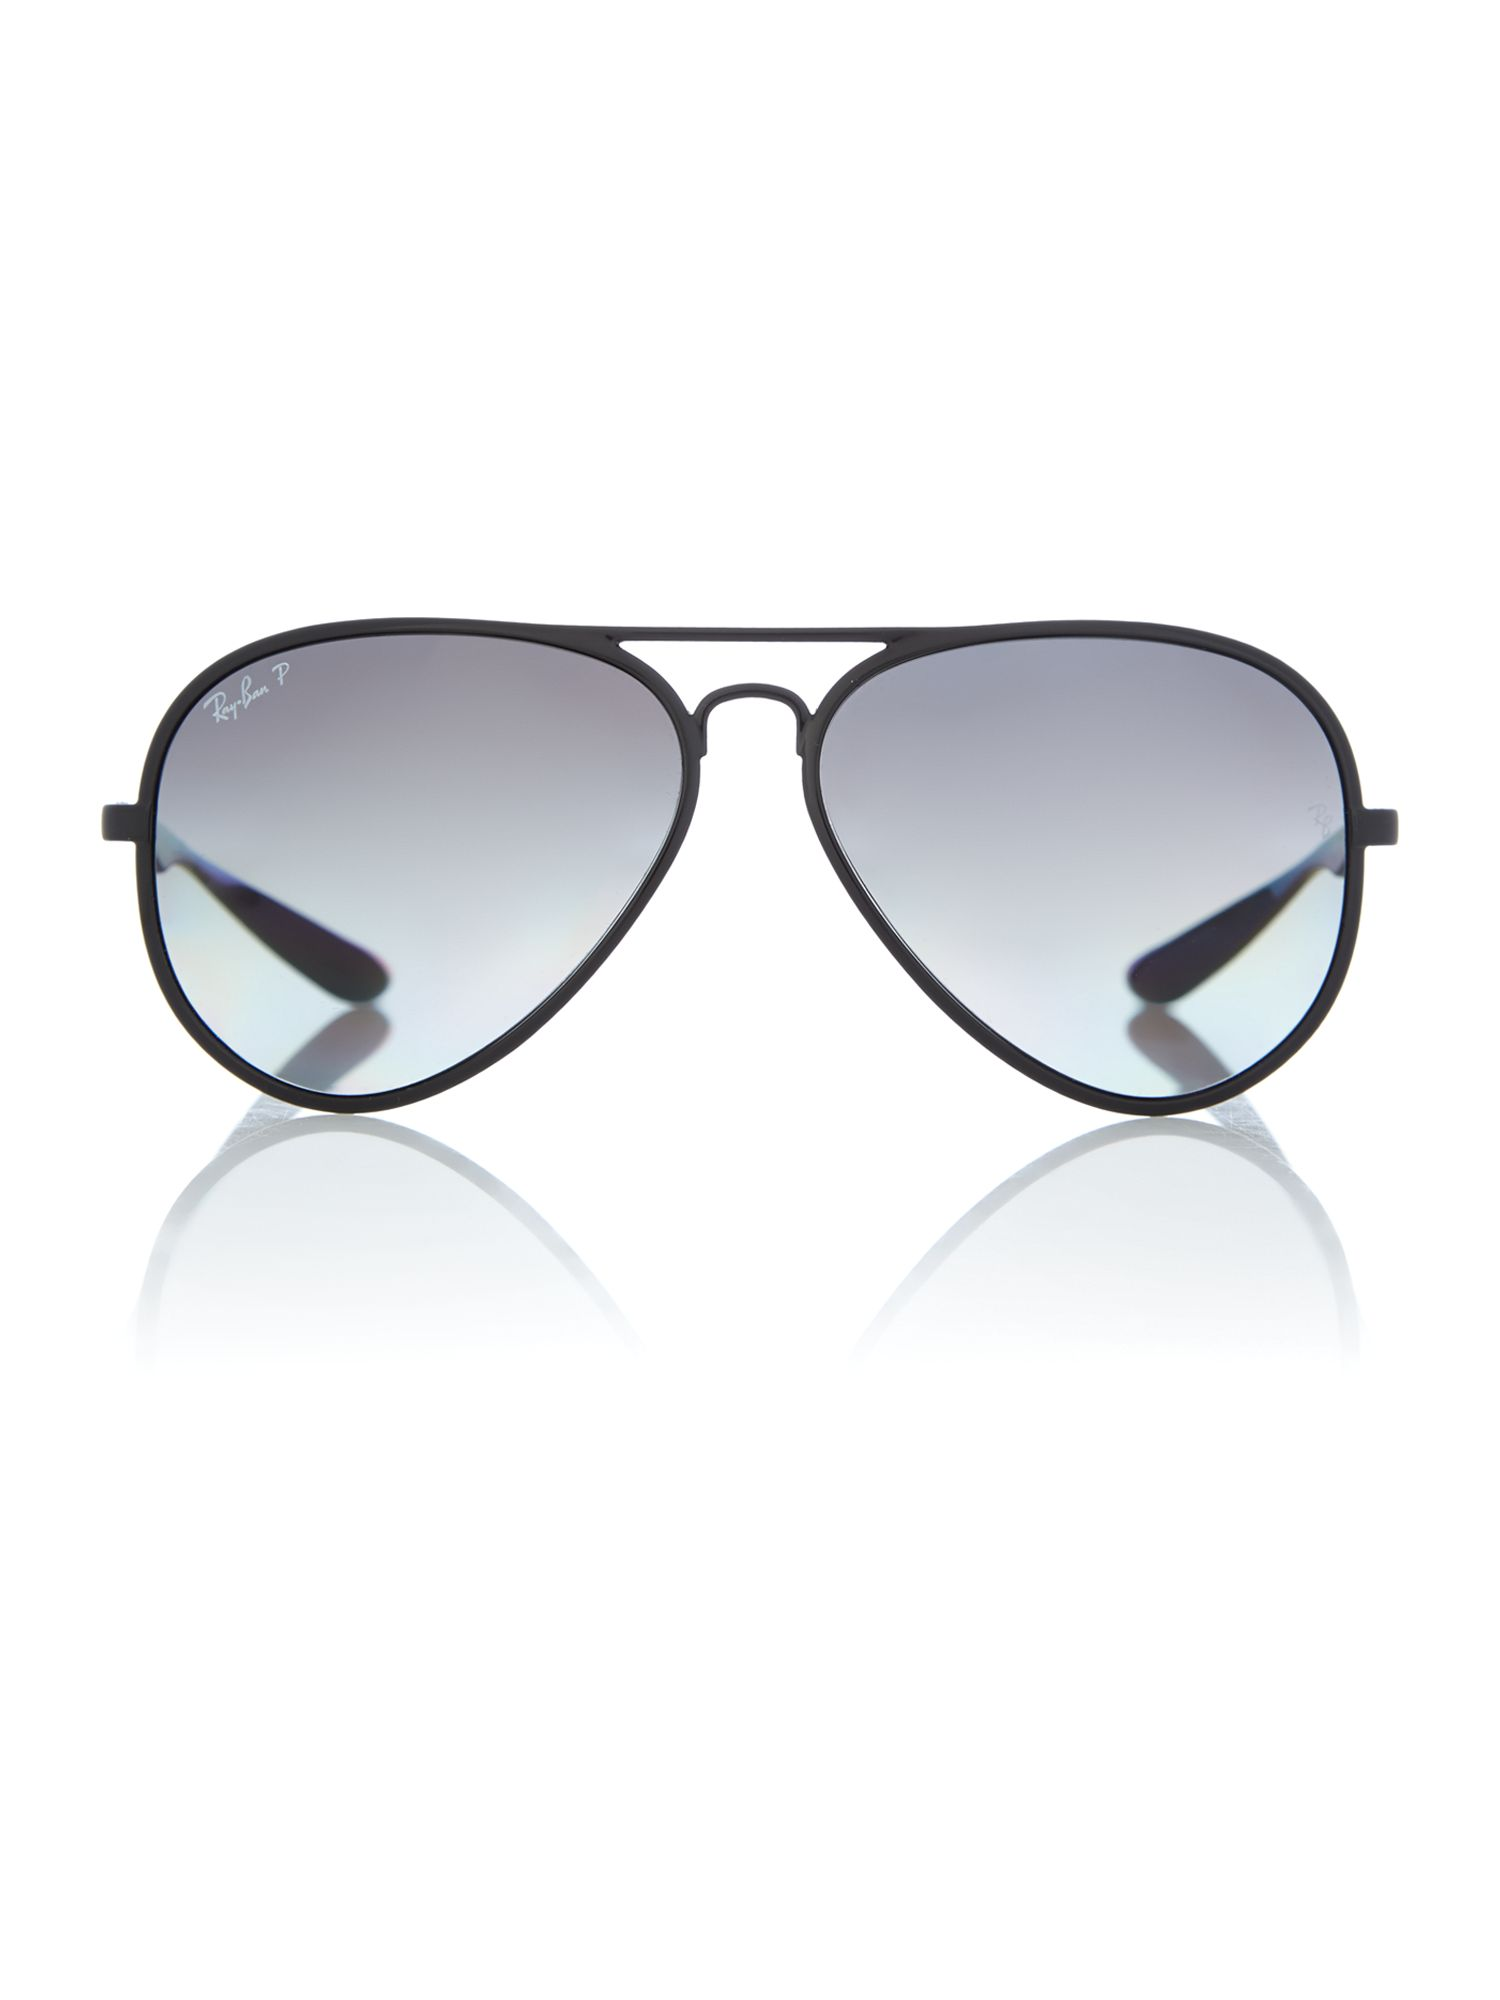 Rb4180 men`s pilot sunglasses